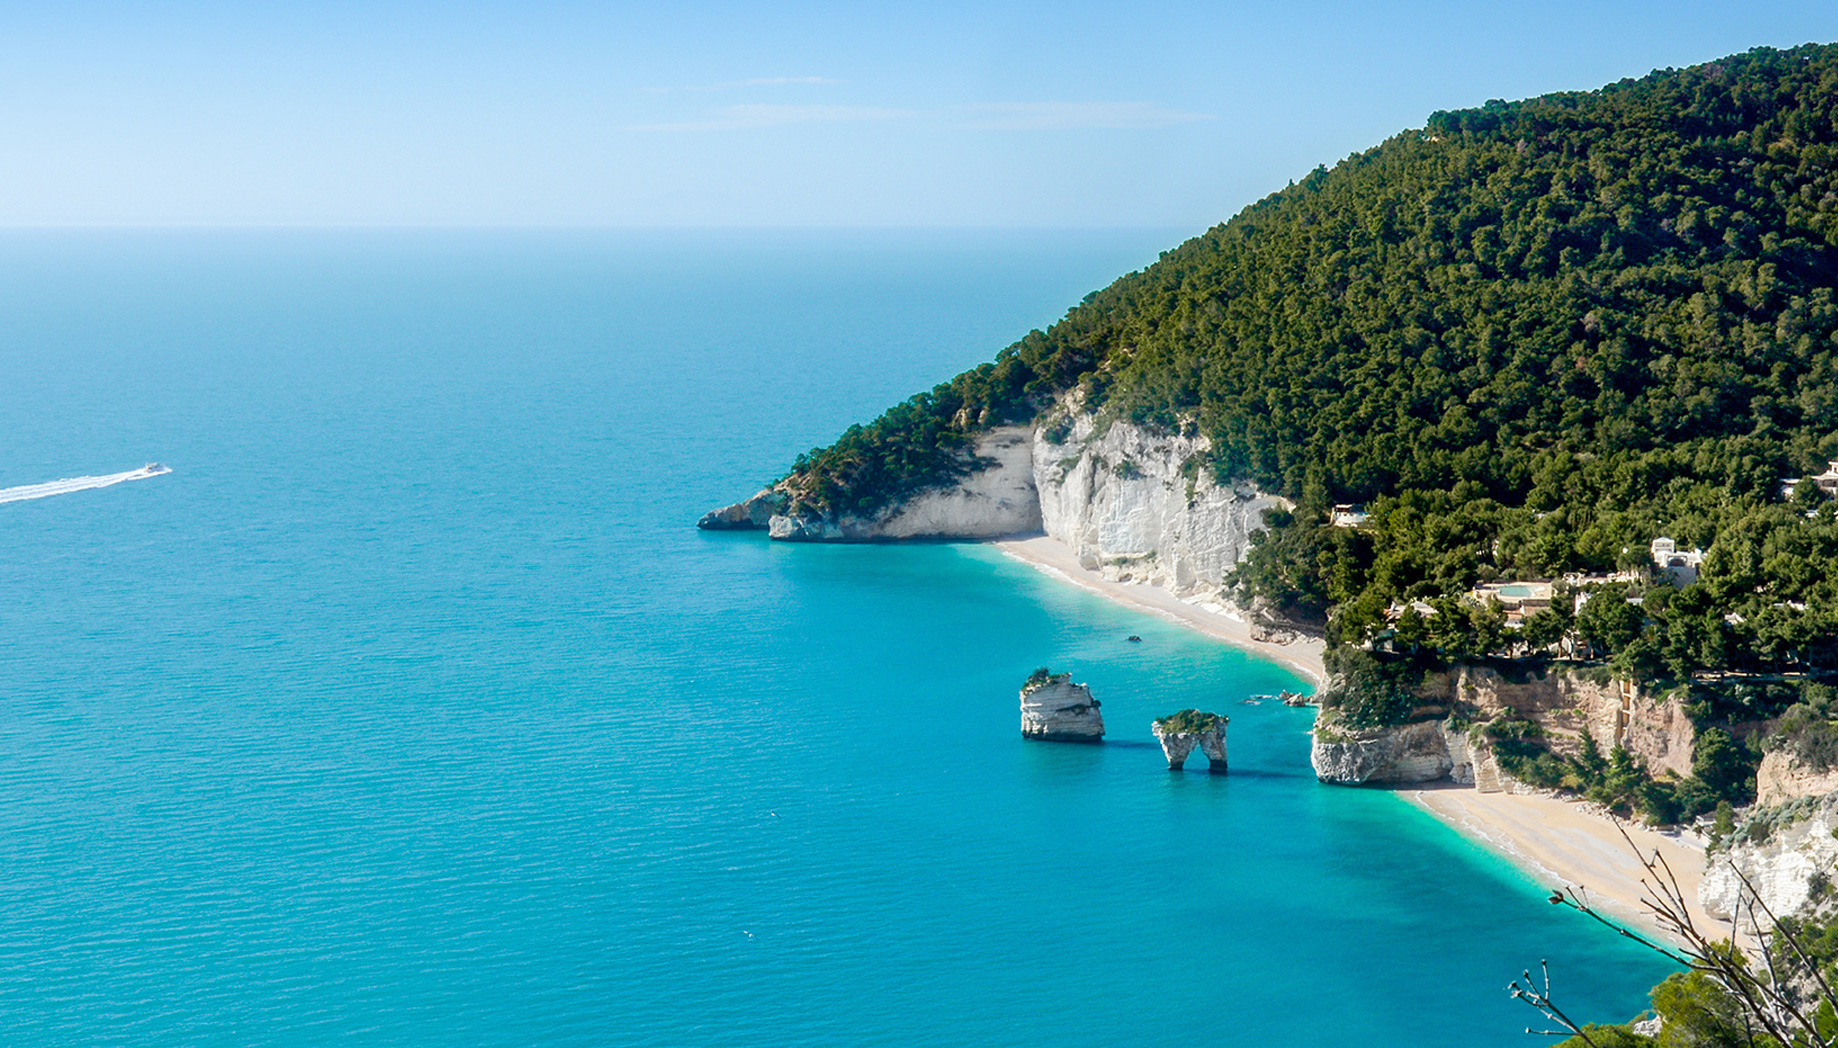 Faraglioni Bay, a suggestive holiday overlooking the sea on the Gargano Promontory